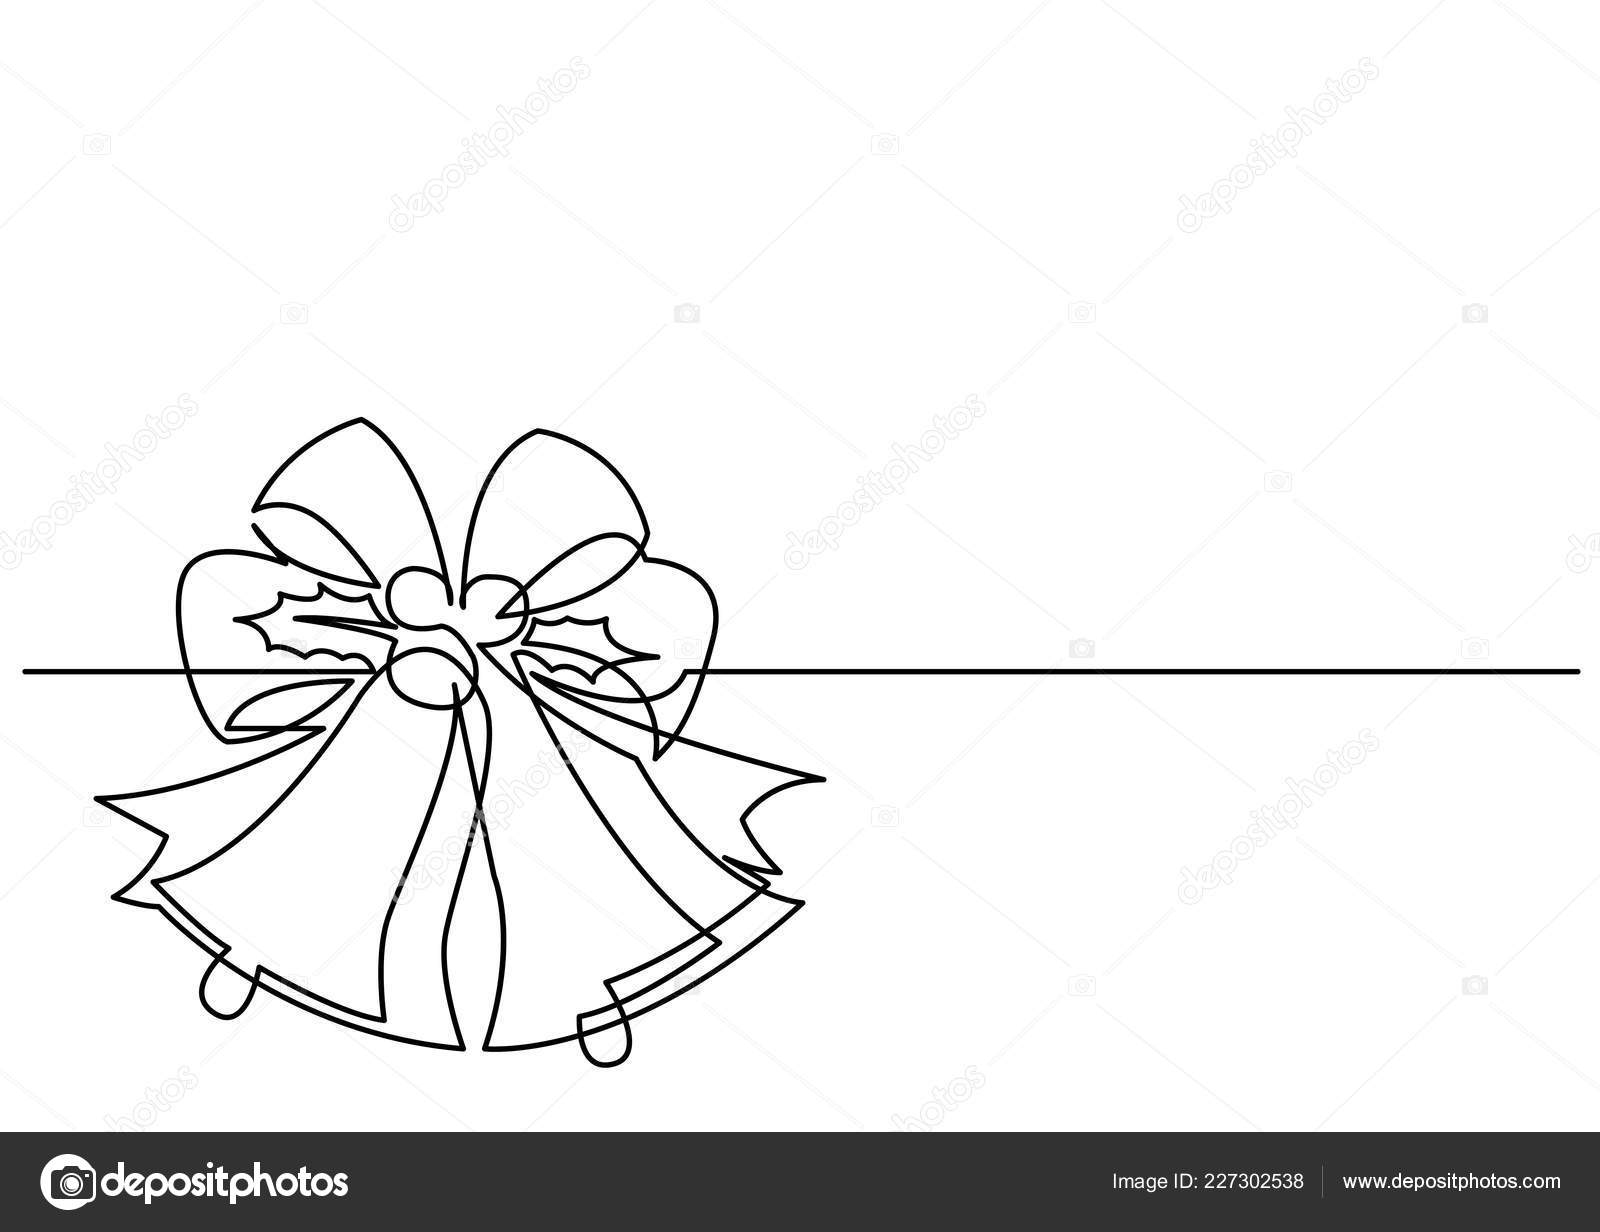 Drawings Of Christmas Ornaments.Drawings Christmas Ornament Drawing Continuous Line